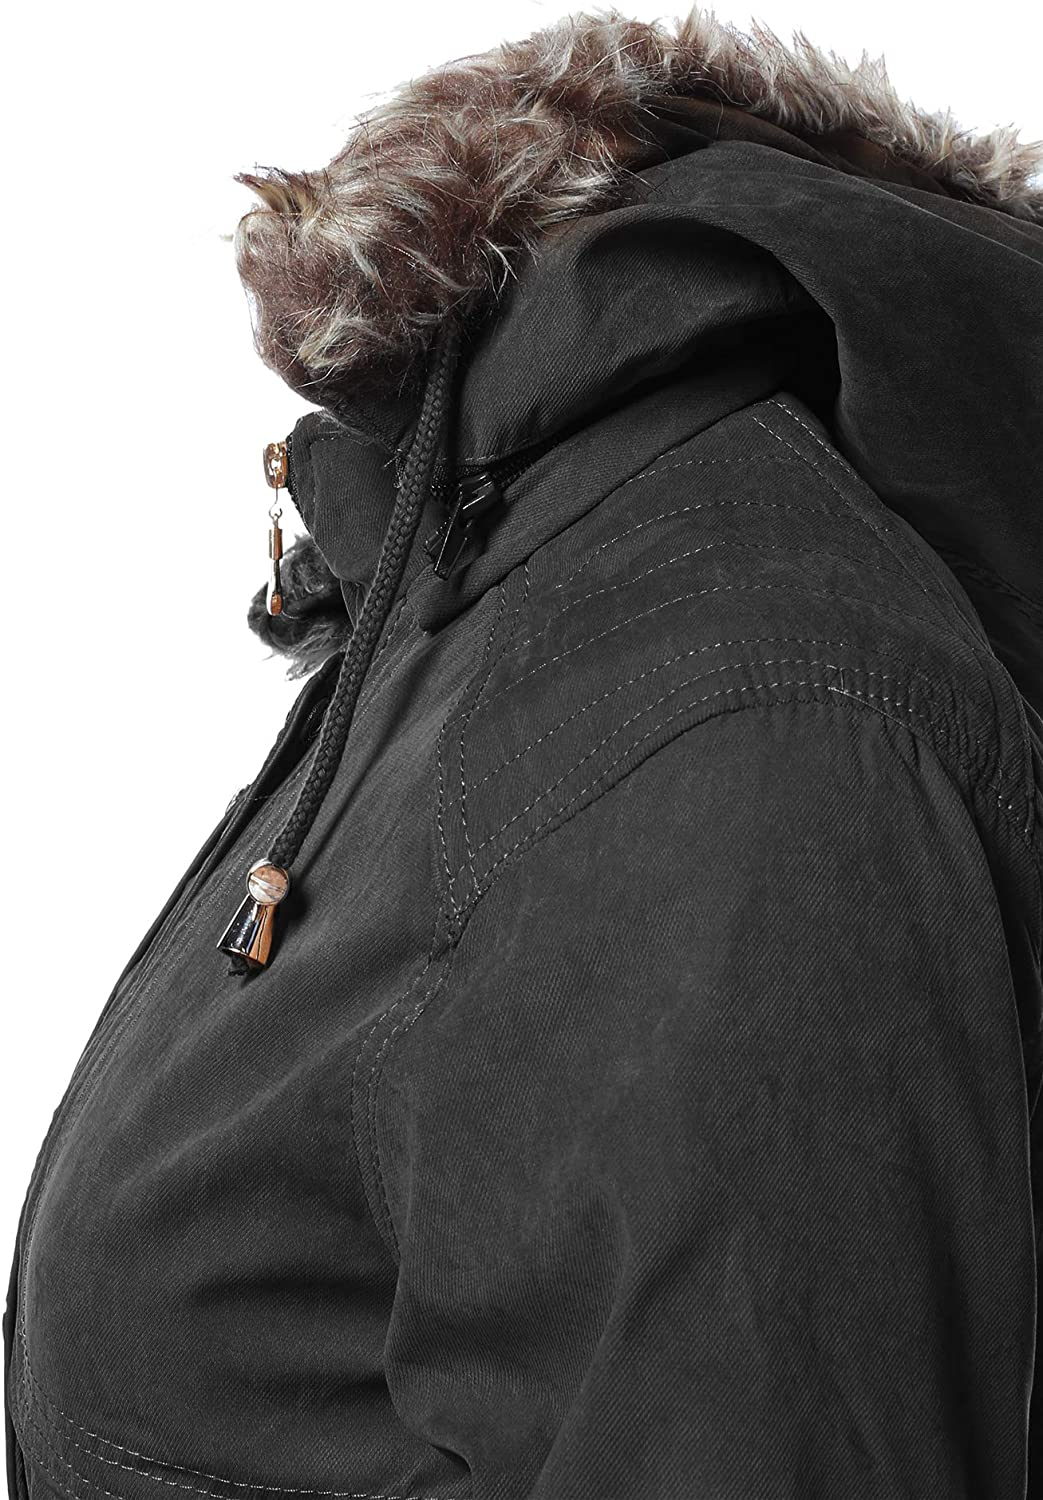 Awesome21 Women's Solid Hooded Warm Winter Thicken Fleece Lined Parkas Long Jacket